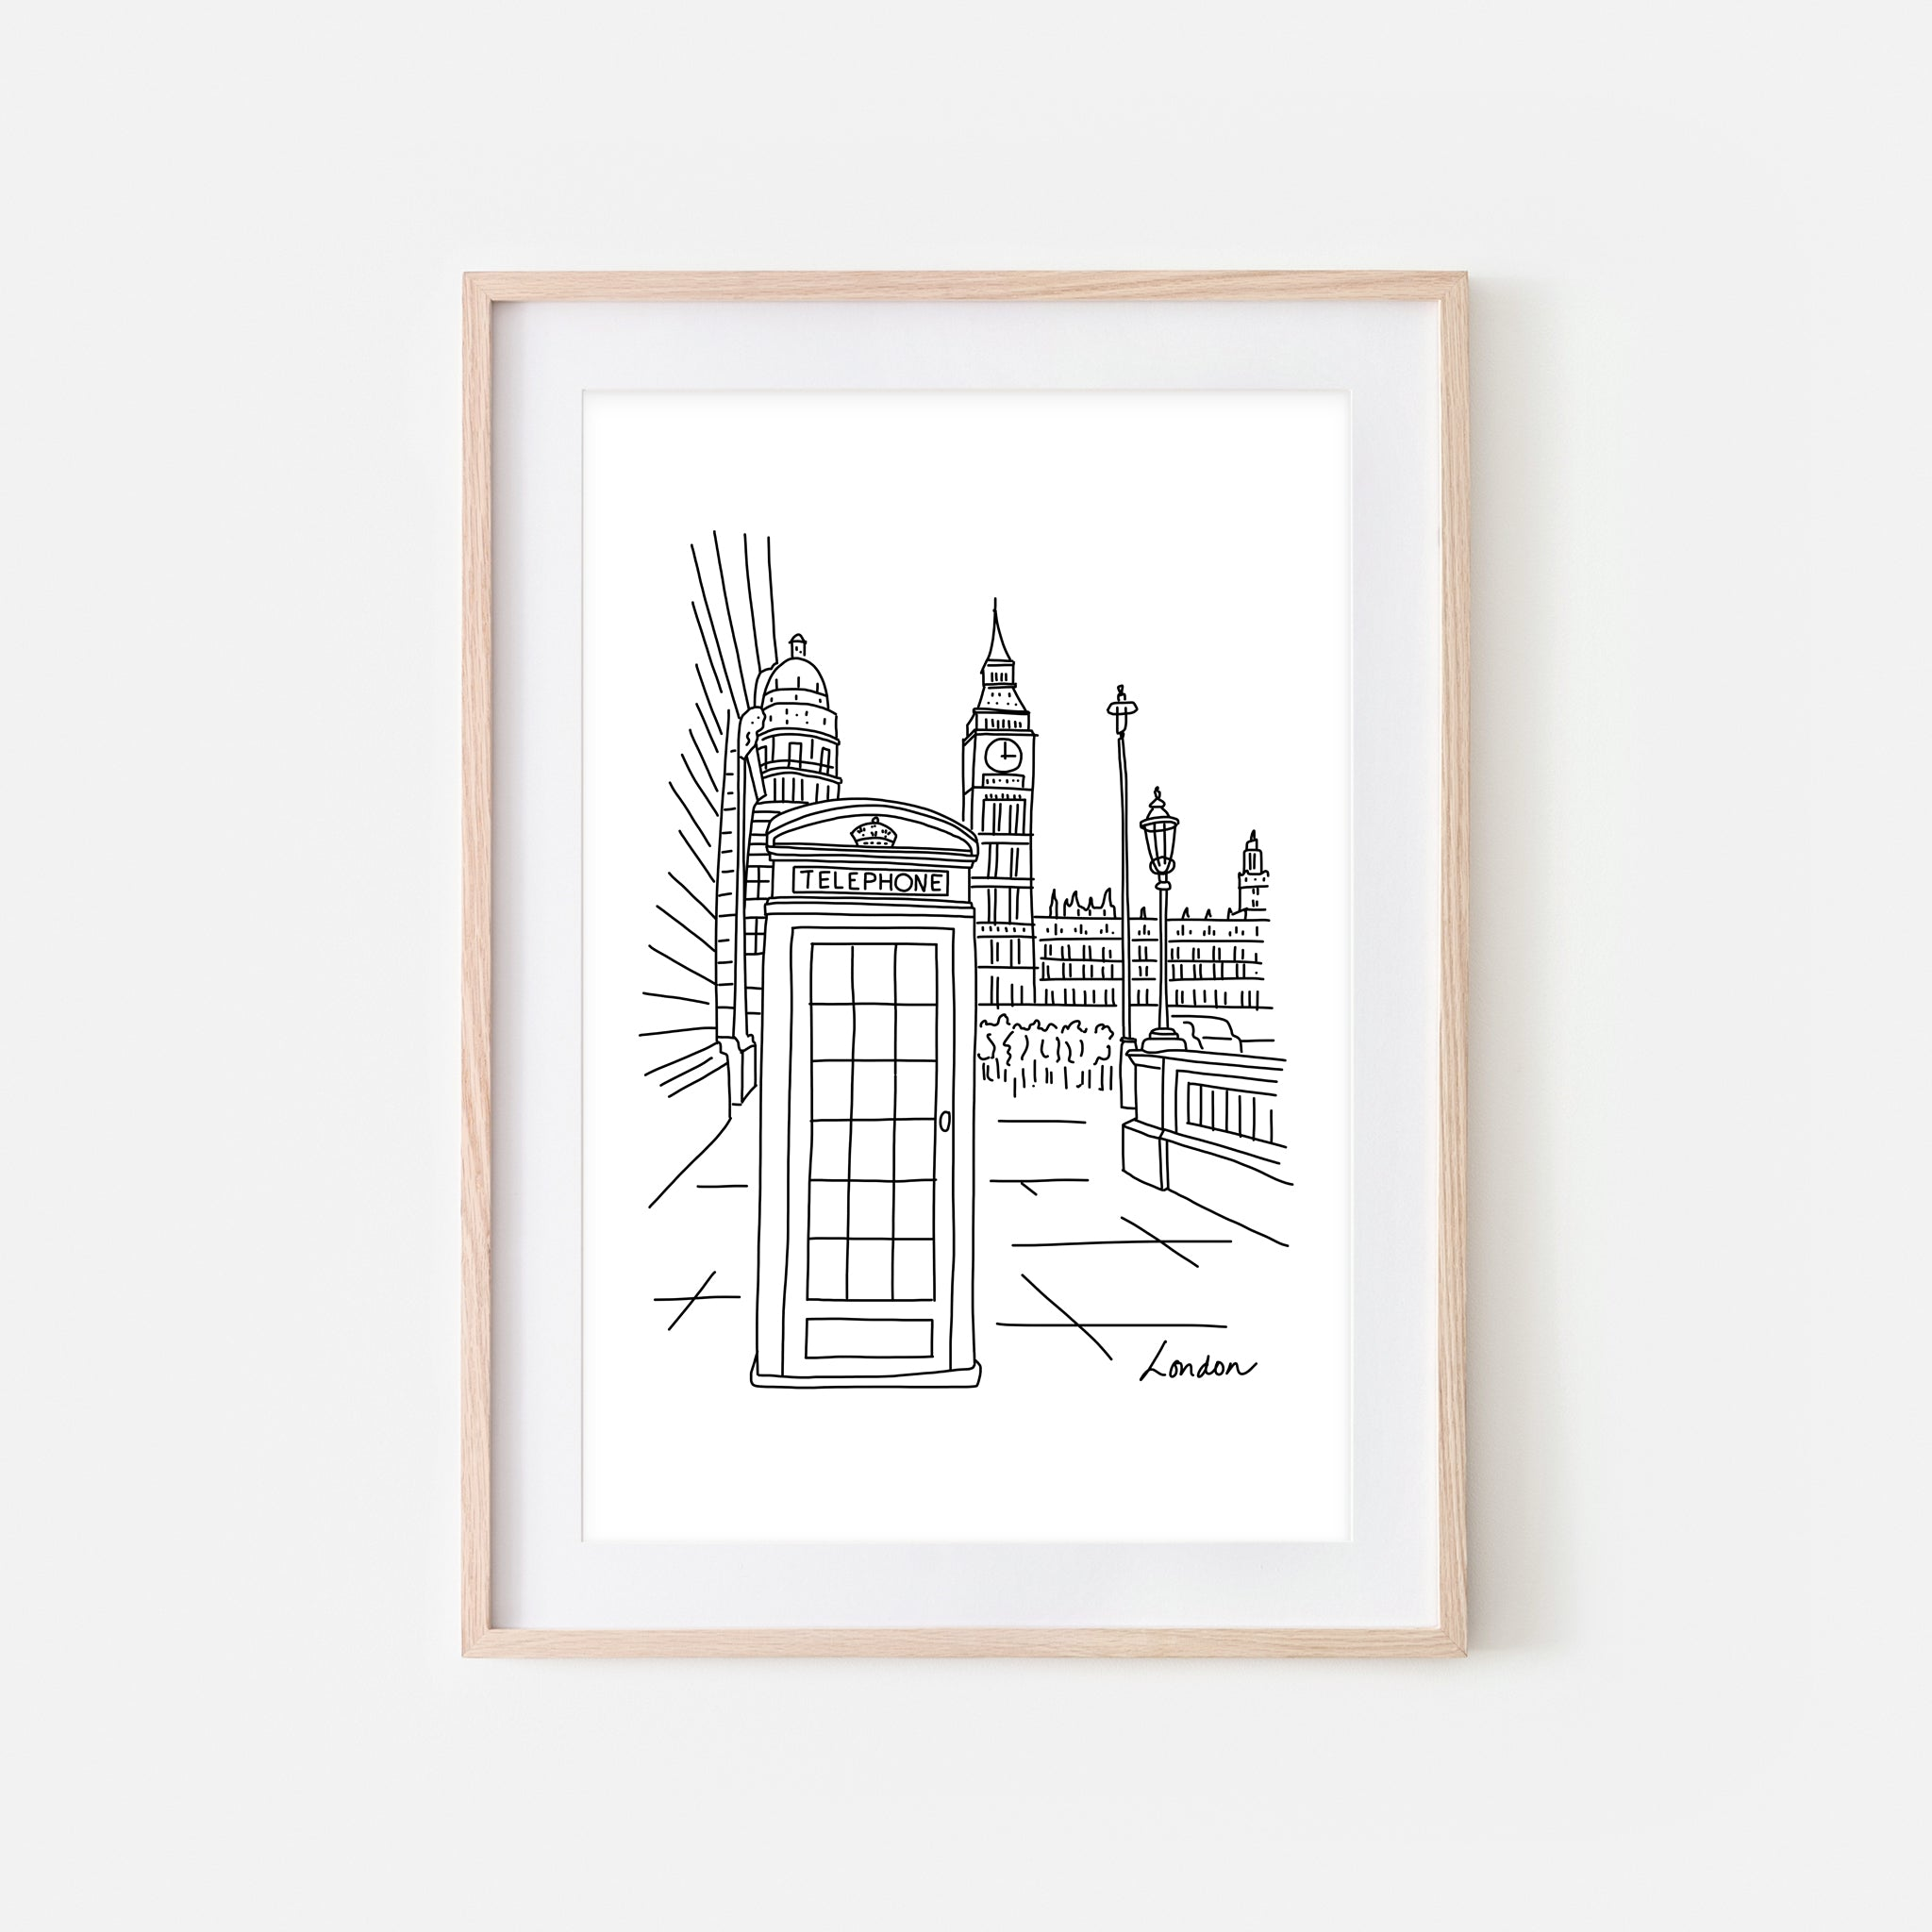 London No. 1 - Telephone Booth & Big Ben Wall Art - Black and White Line Drawing - Print, Poster or Printable Download